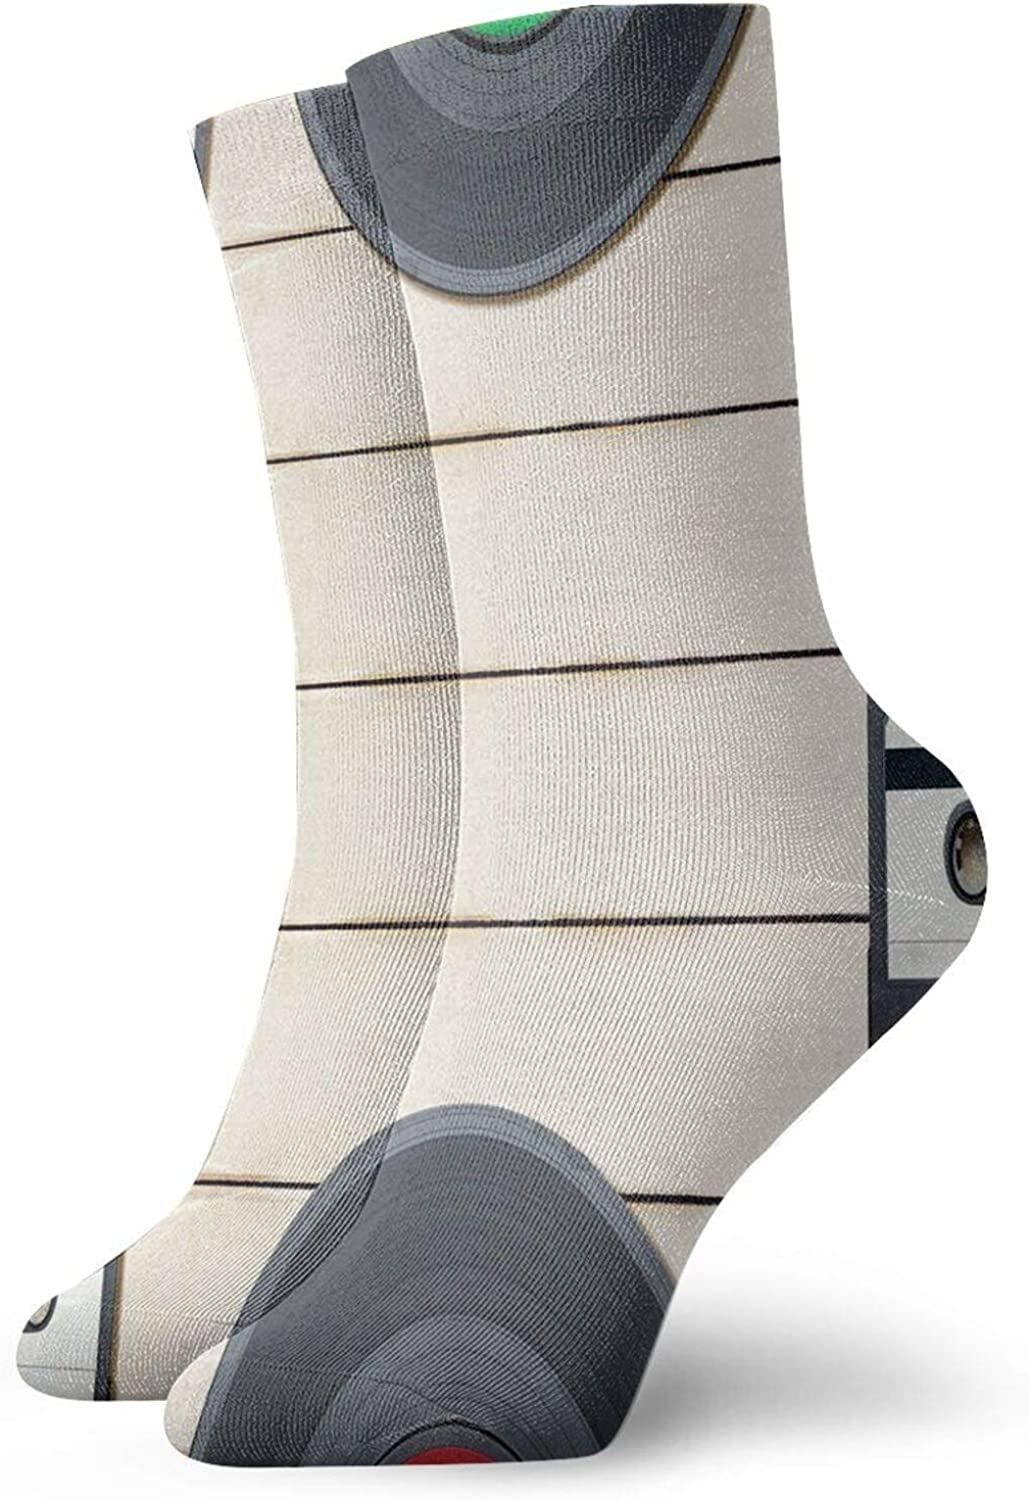 Compression High Socks-Top Ranking TOP10 View Of Cassettes Re Max 81% OFF Audio Gramophone